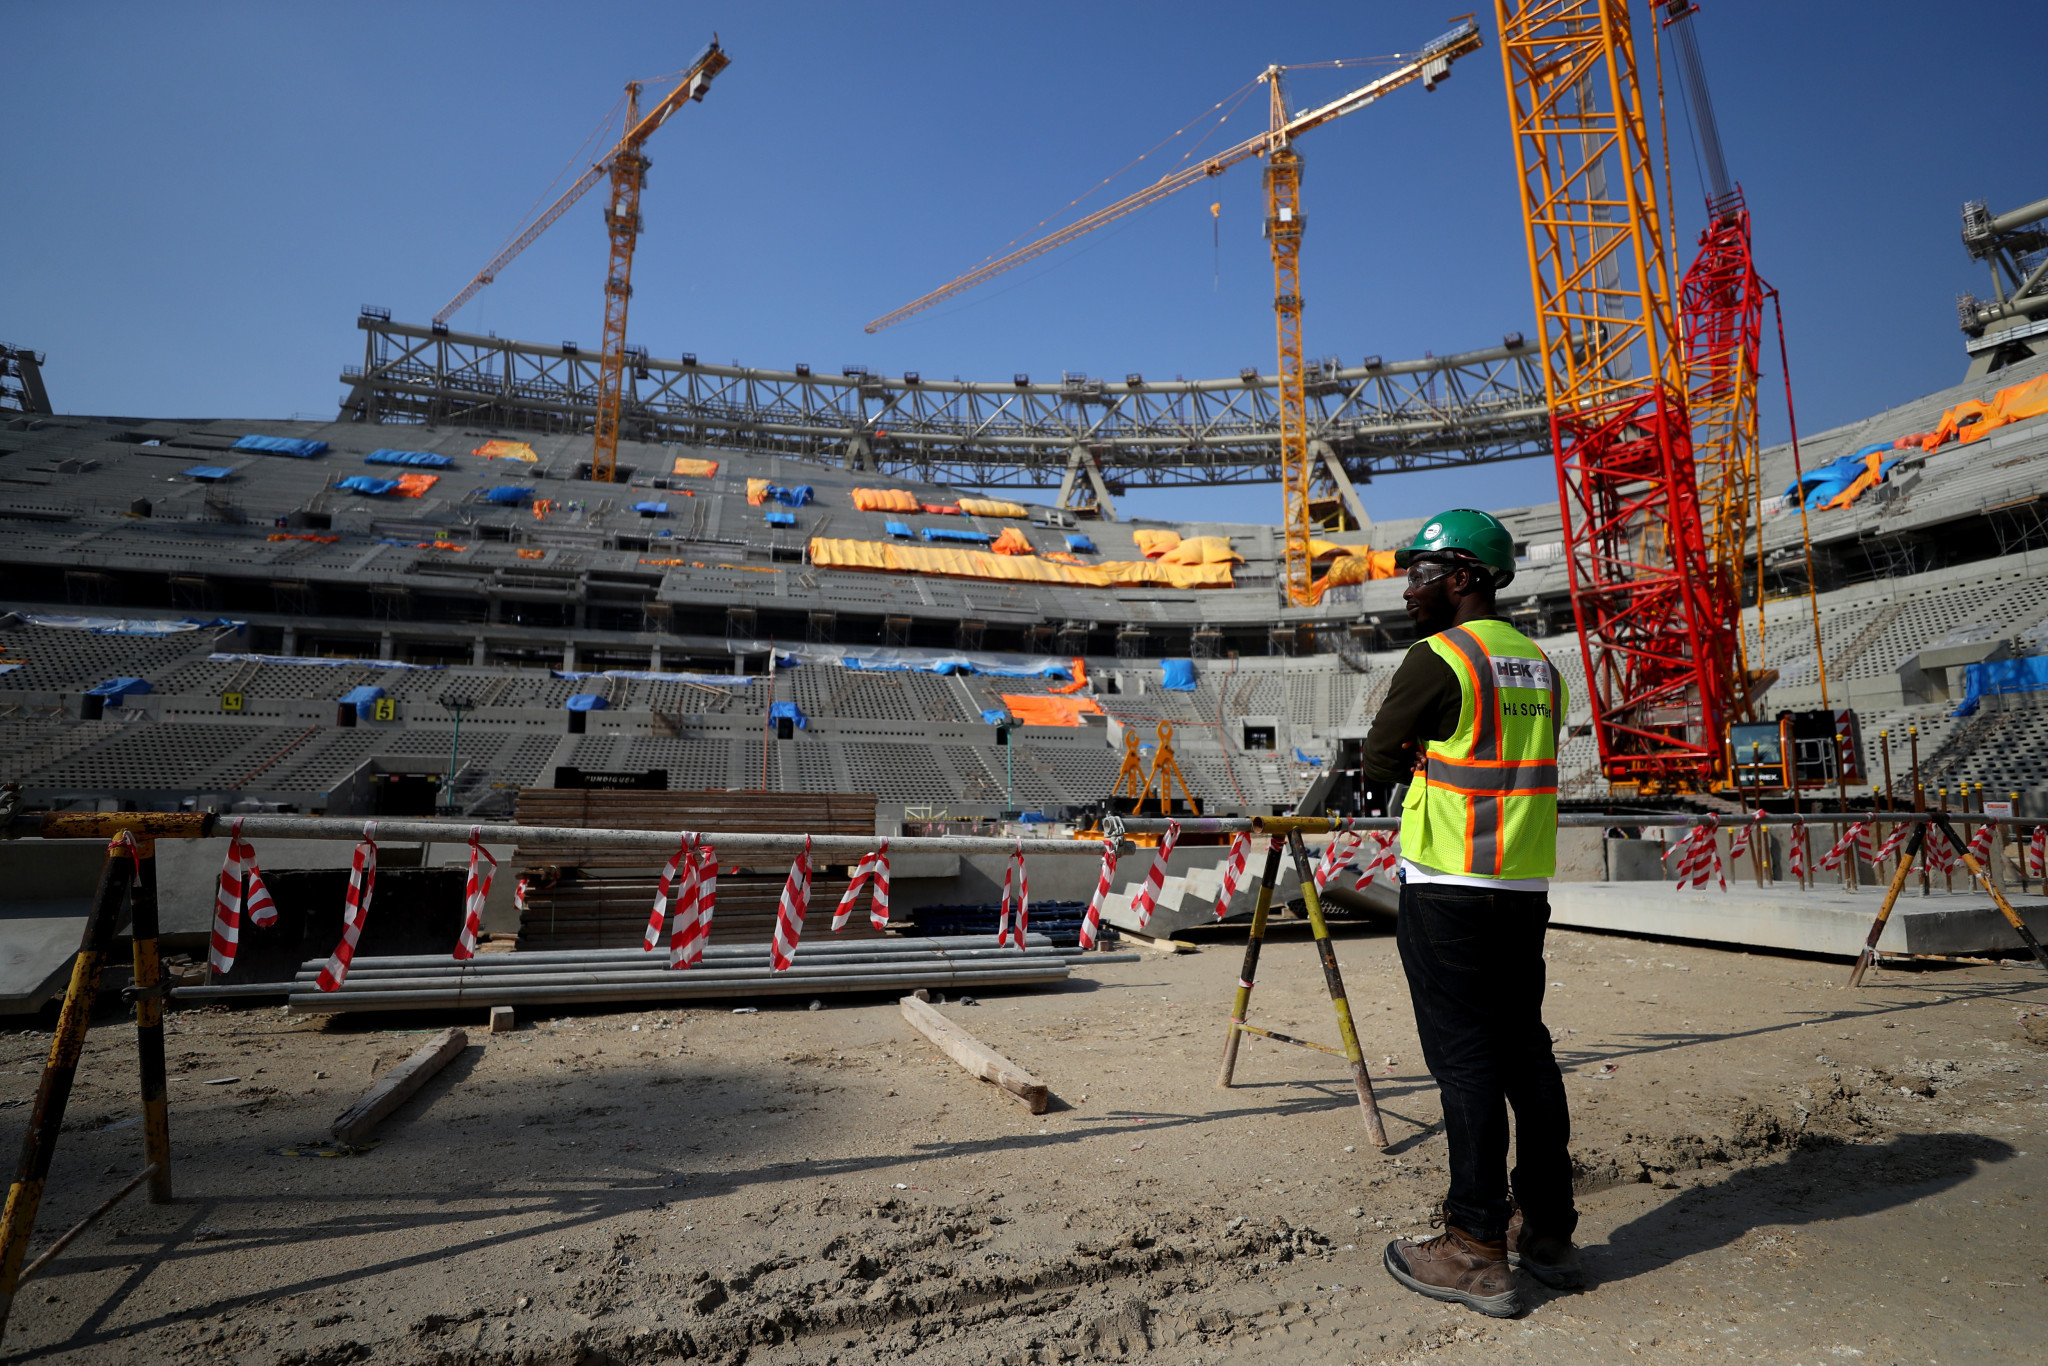 Qatar 2022 cut World Cup workforce due to economic pressures of pandemic